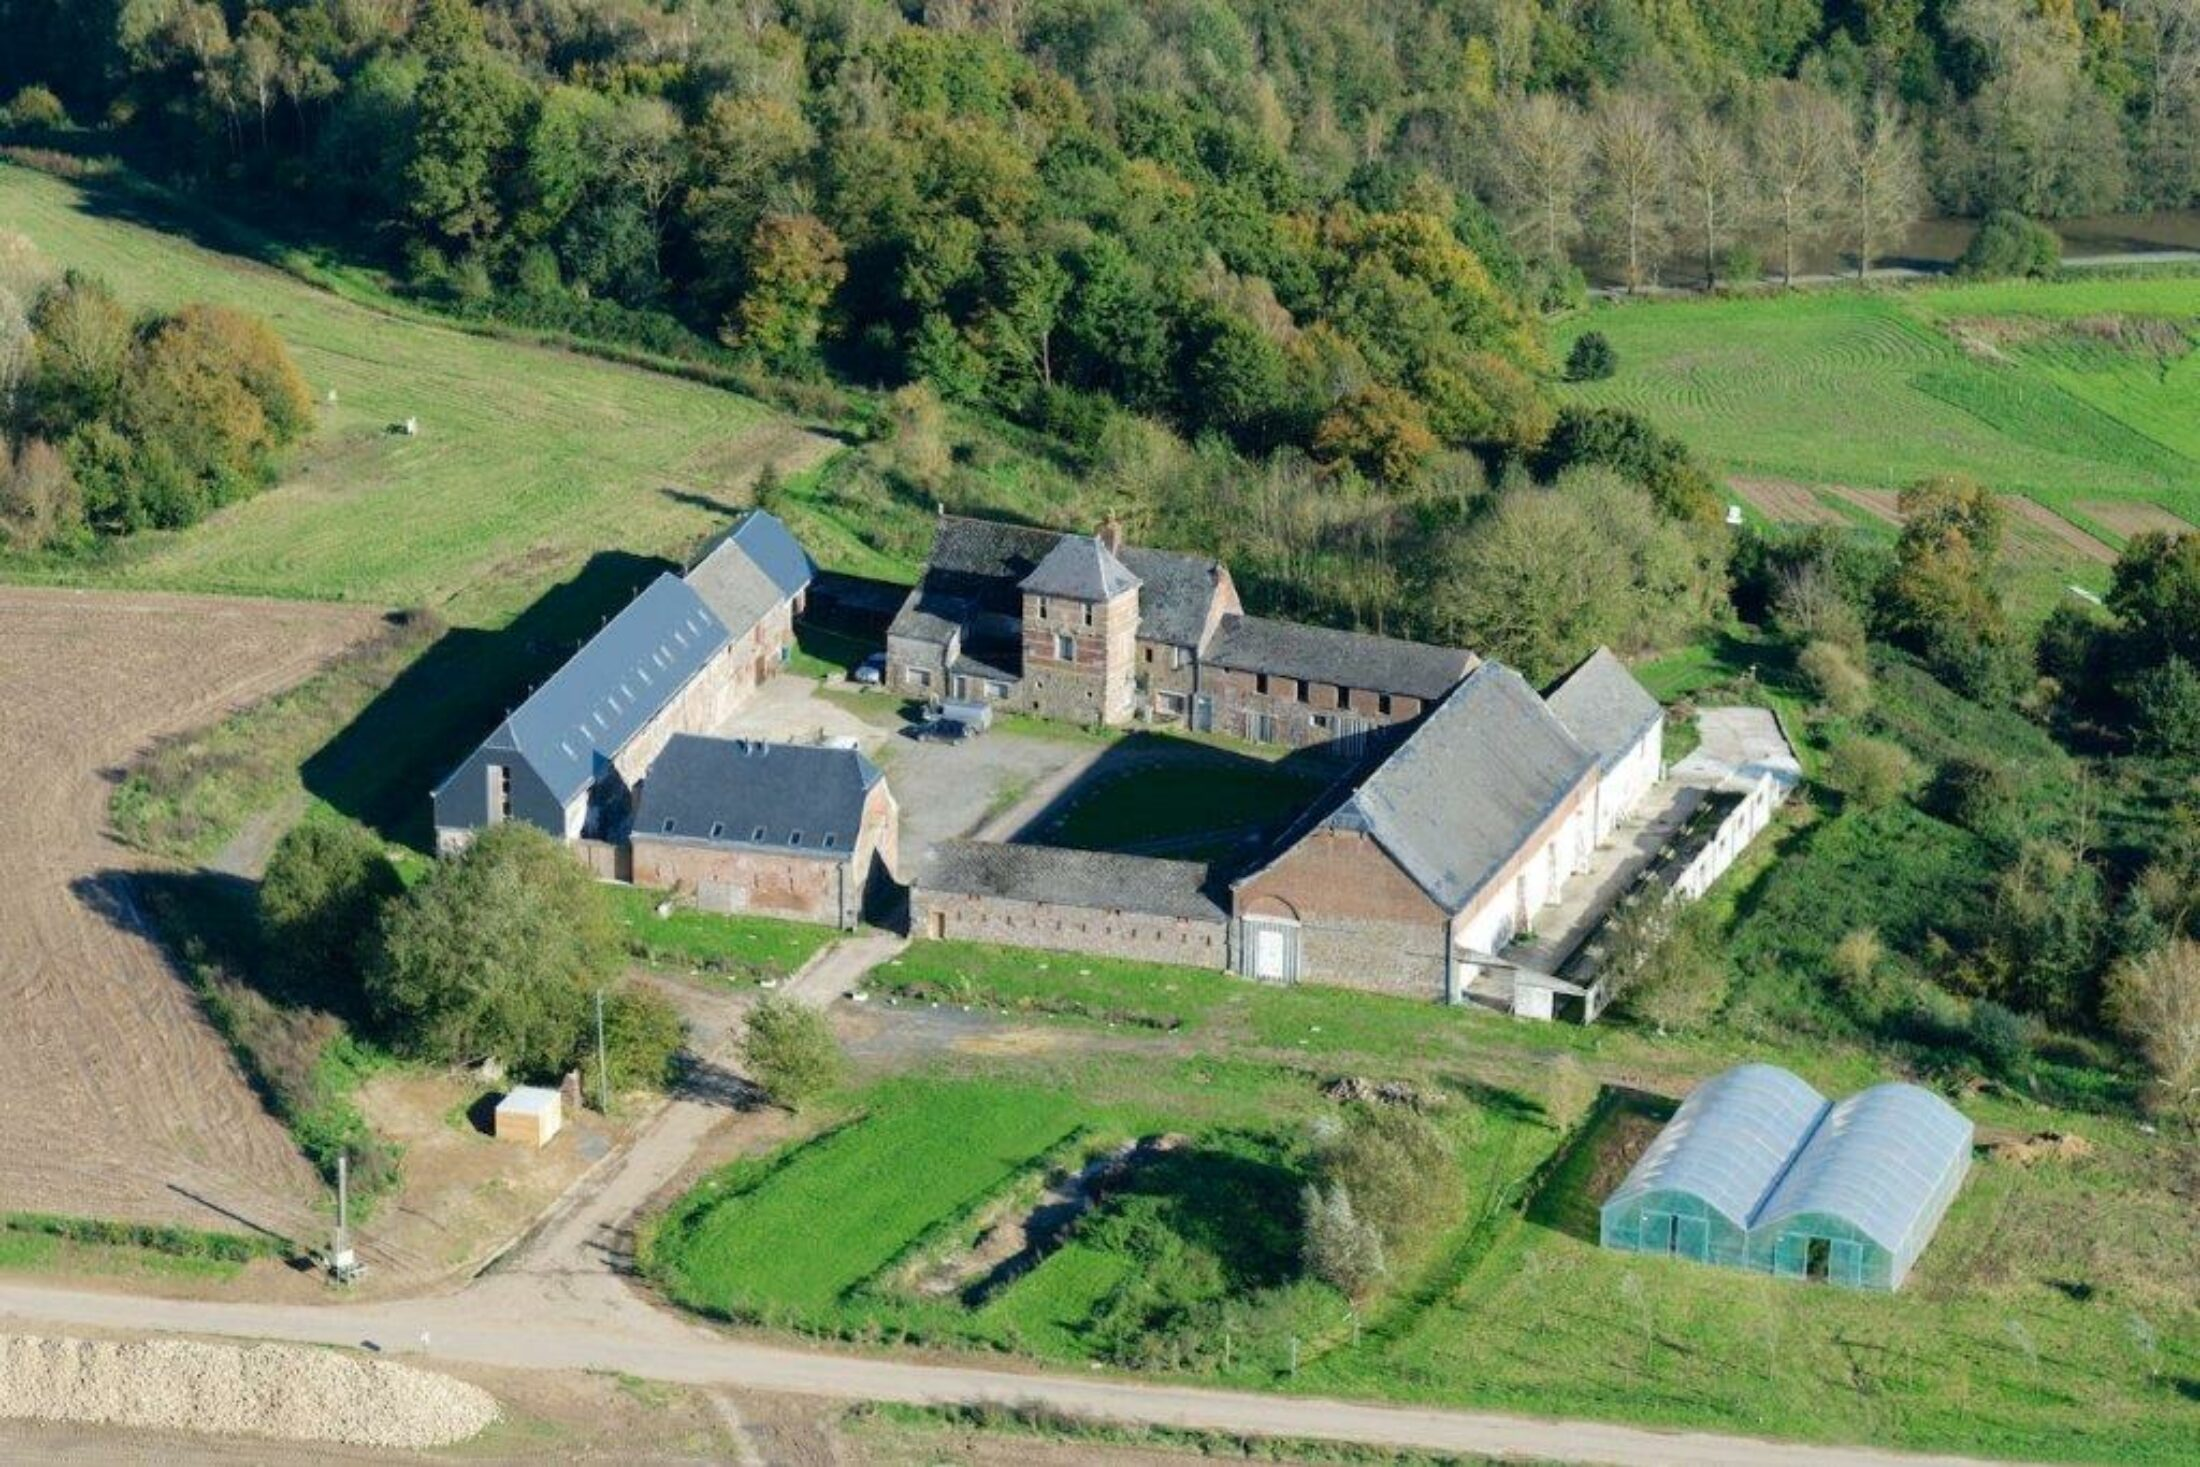 Forestaille Farm: a mesh of projects promoting local produce, biodiversity, jobseeker schemes…